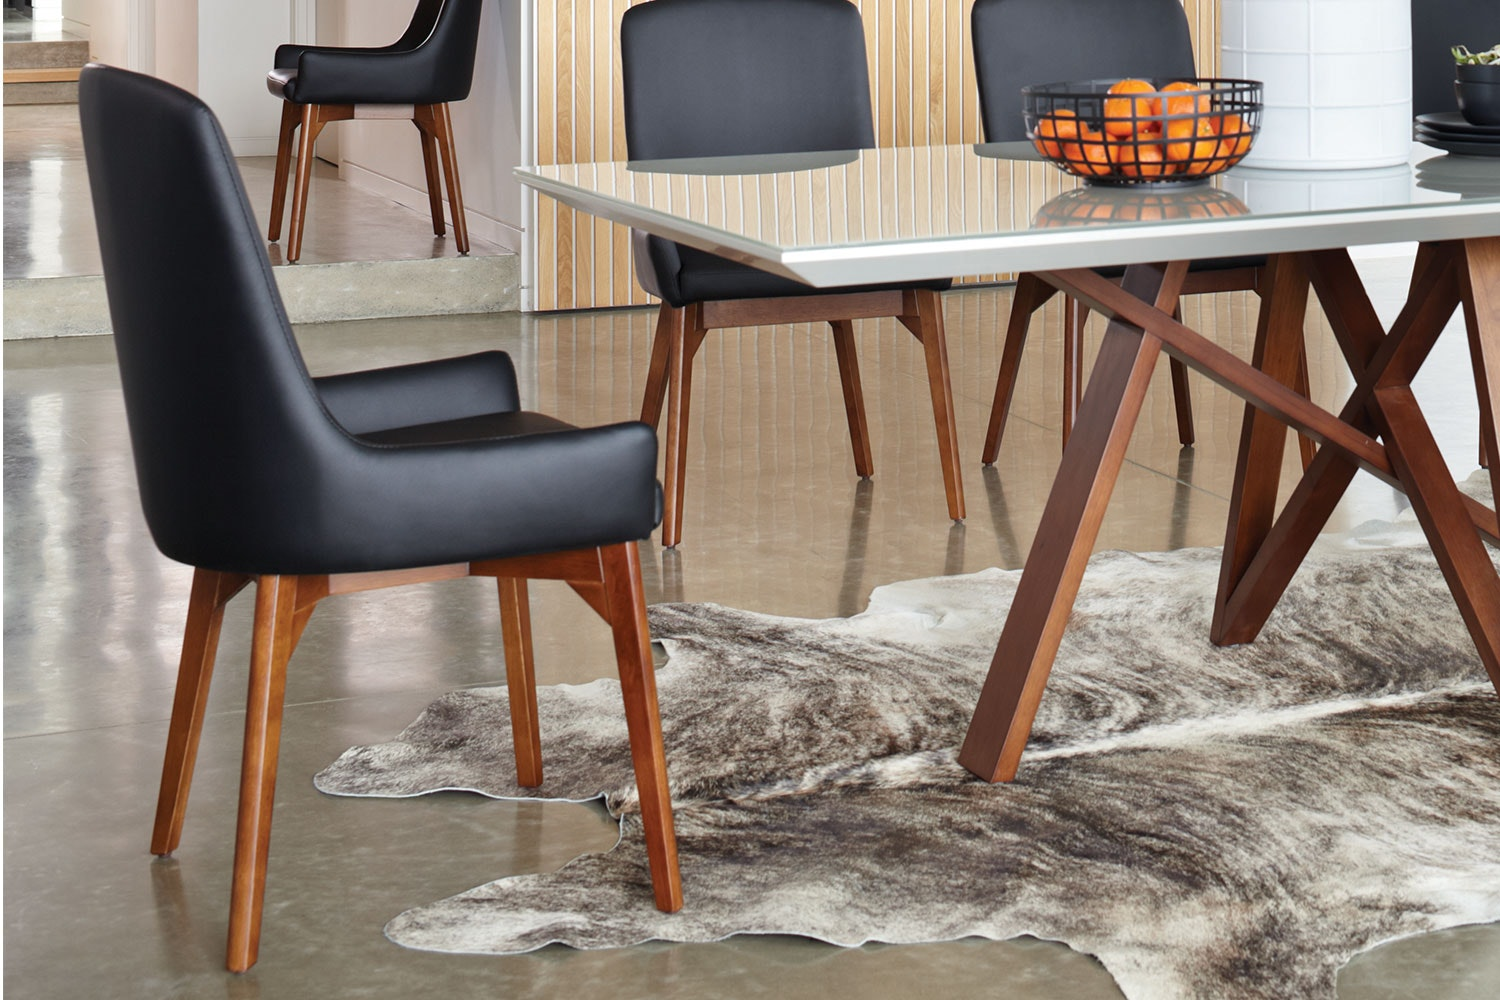 ... Monte Carlo Dining Chair By Insato Furniture